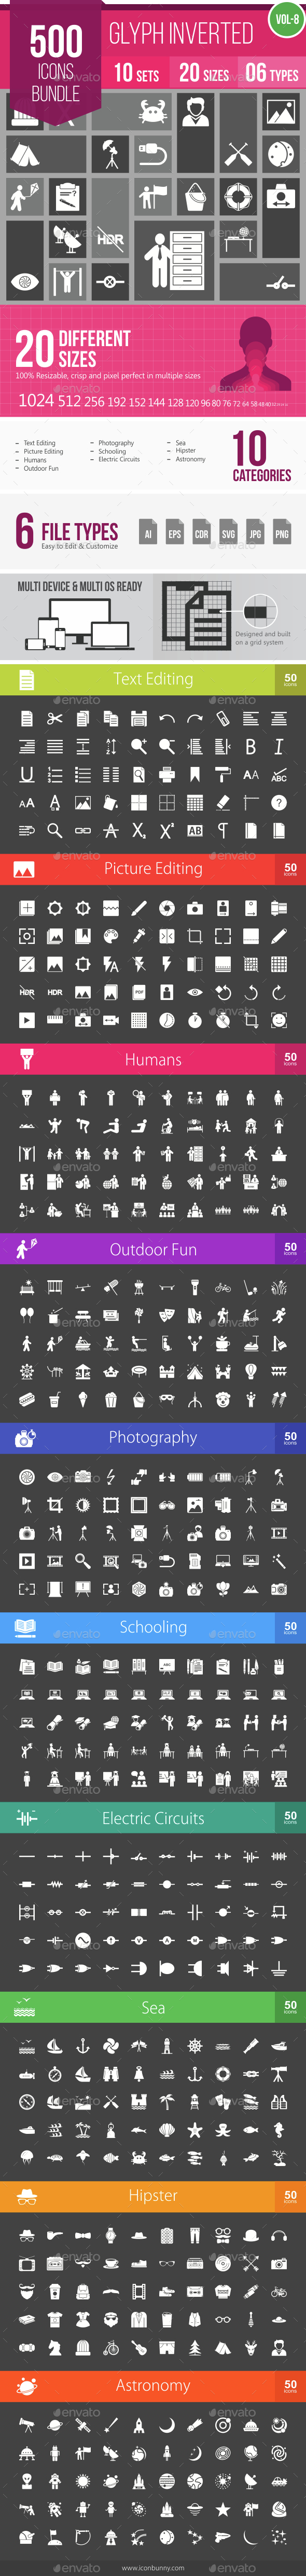 500 Vector Inverted Glyph Icons Bundle (Vol-8) - Icons